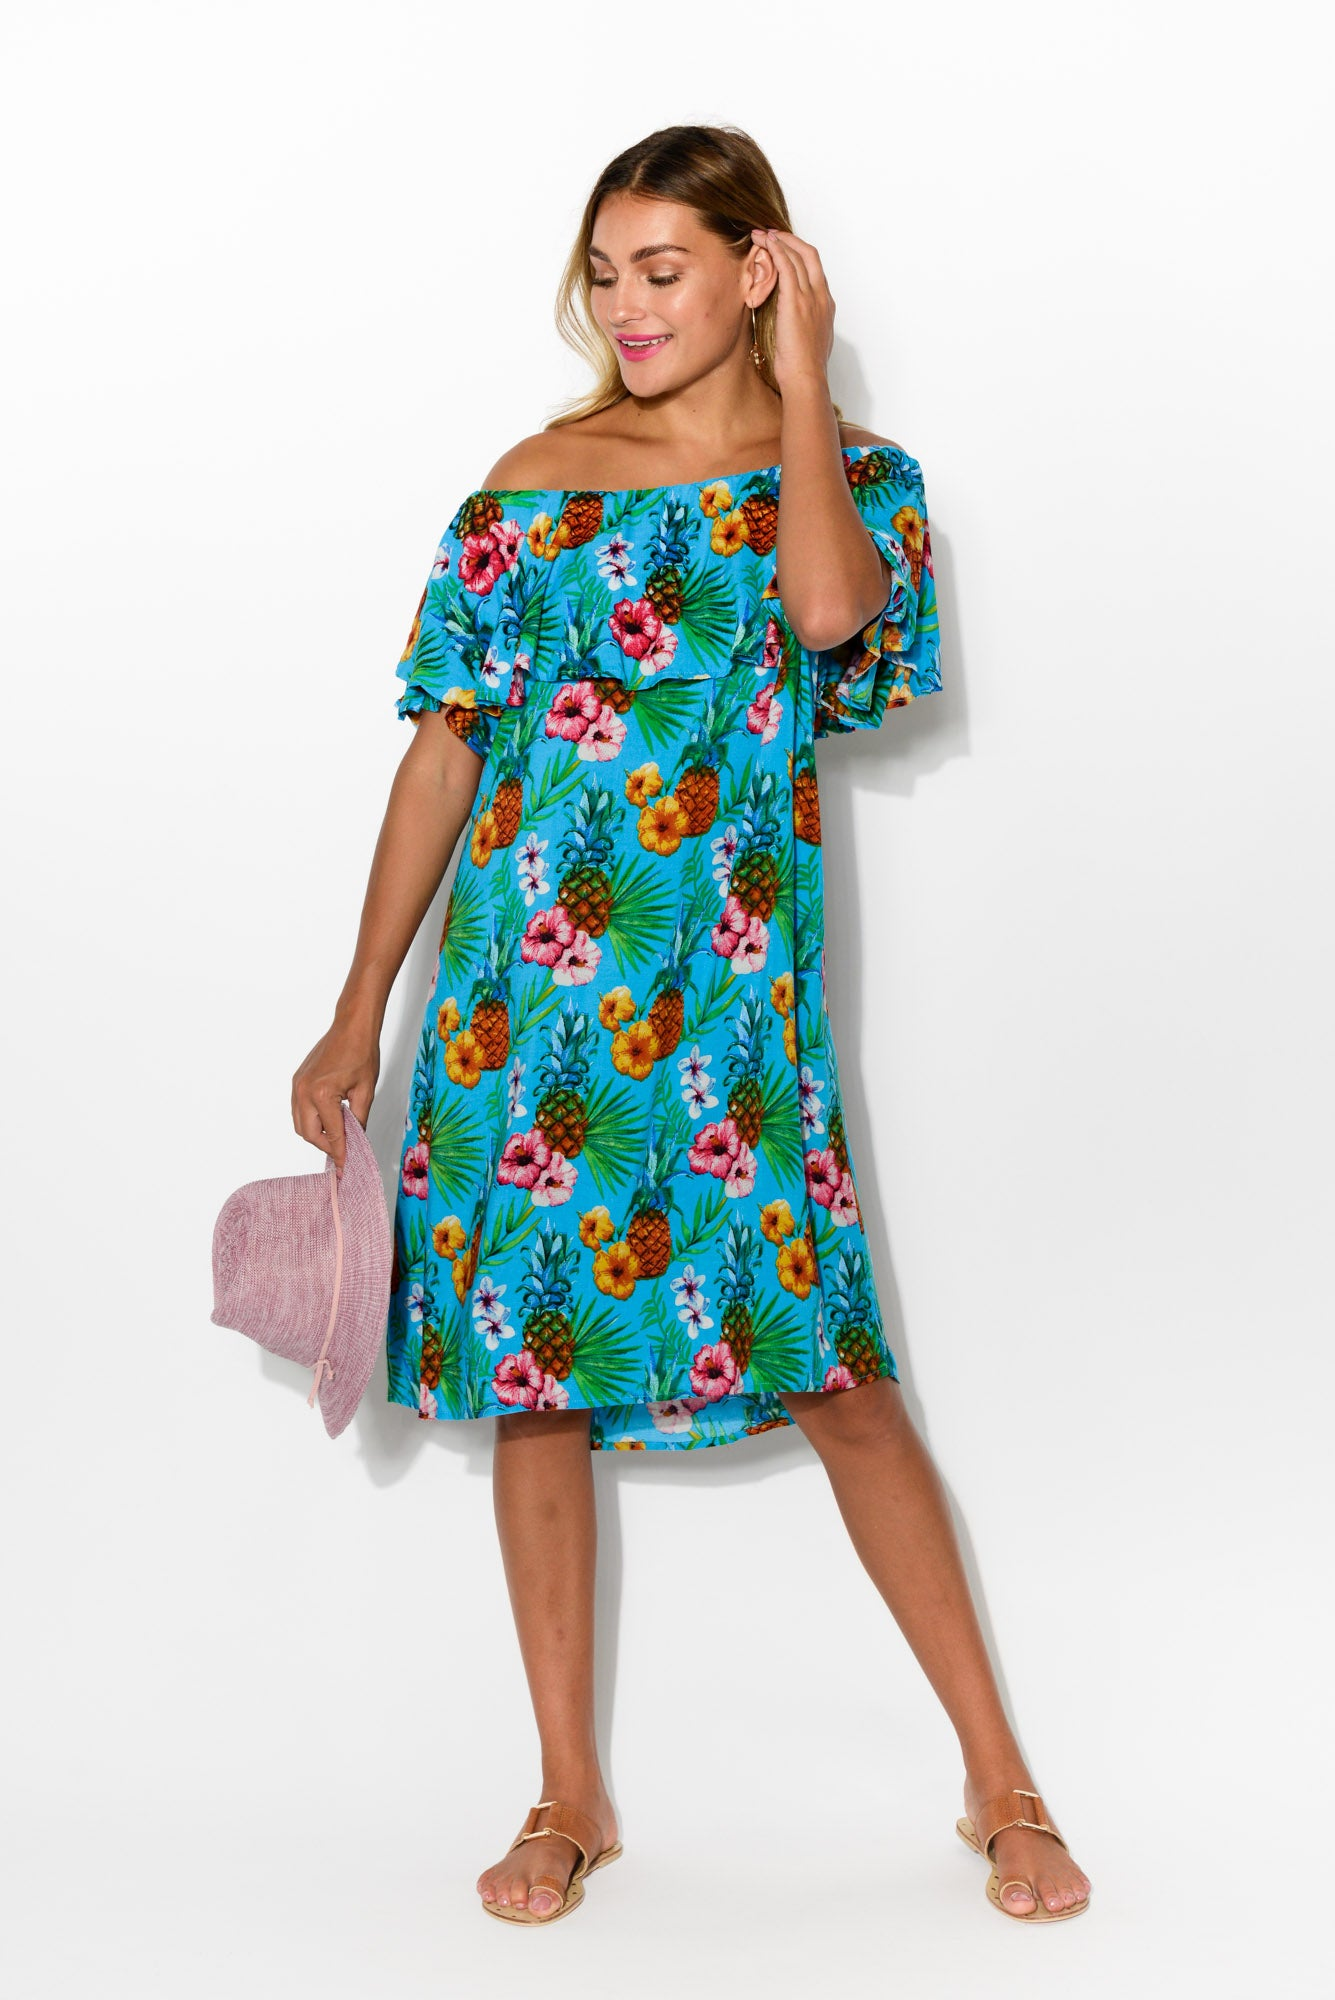 Bianca Blue Pineapple Dress